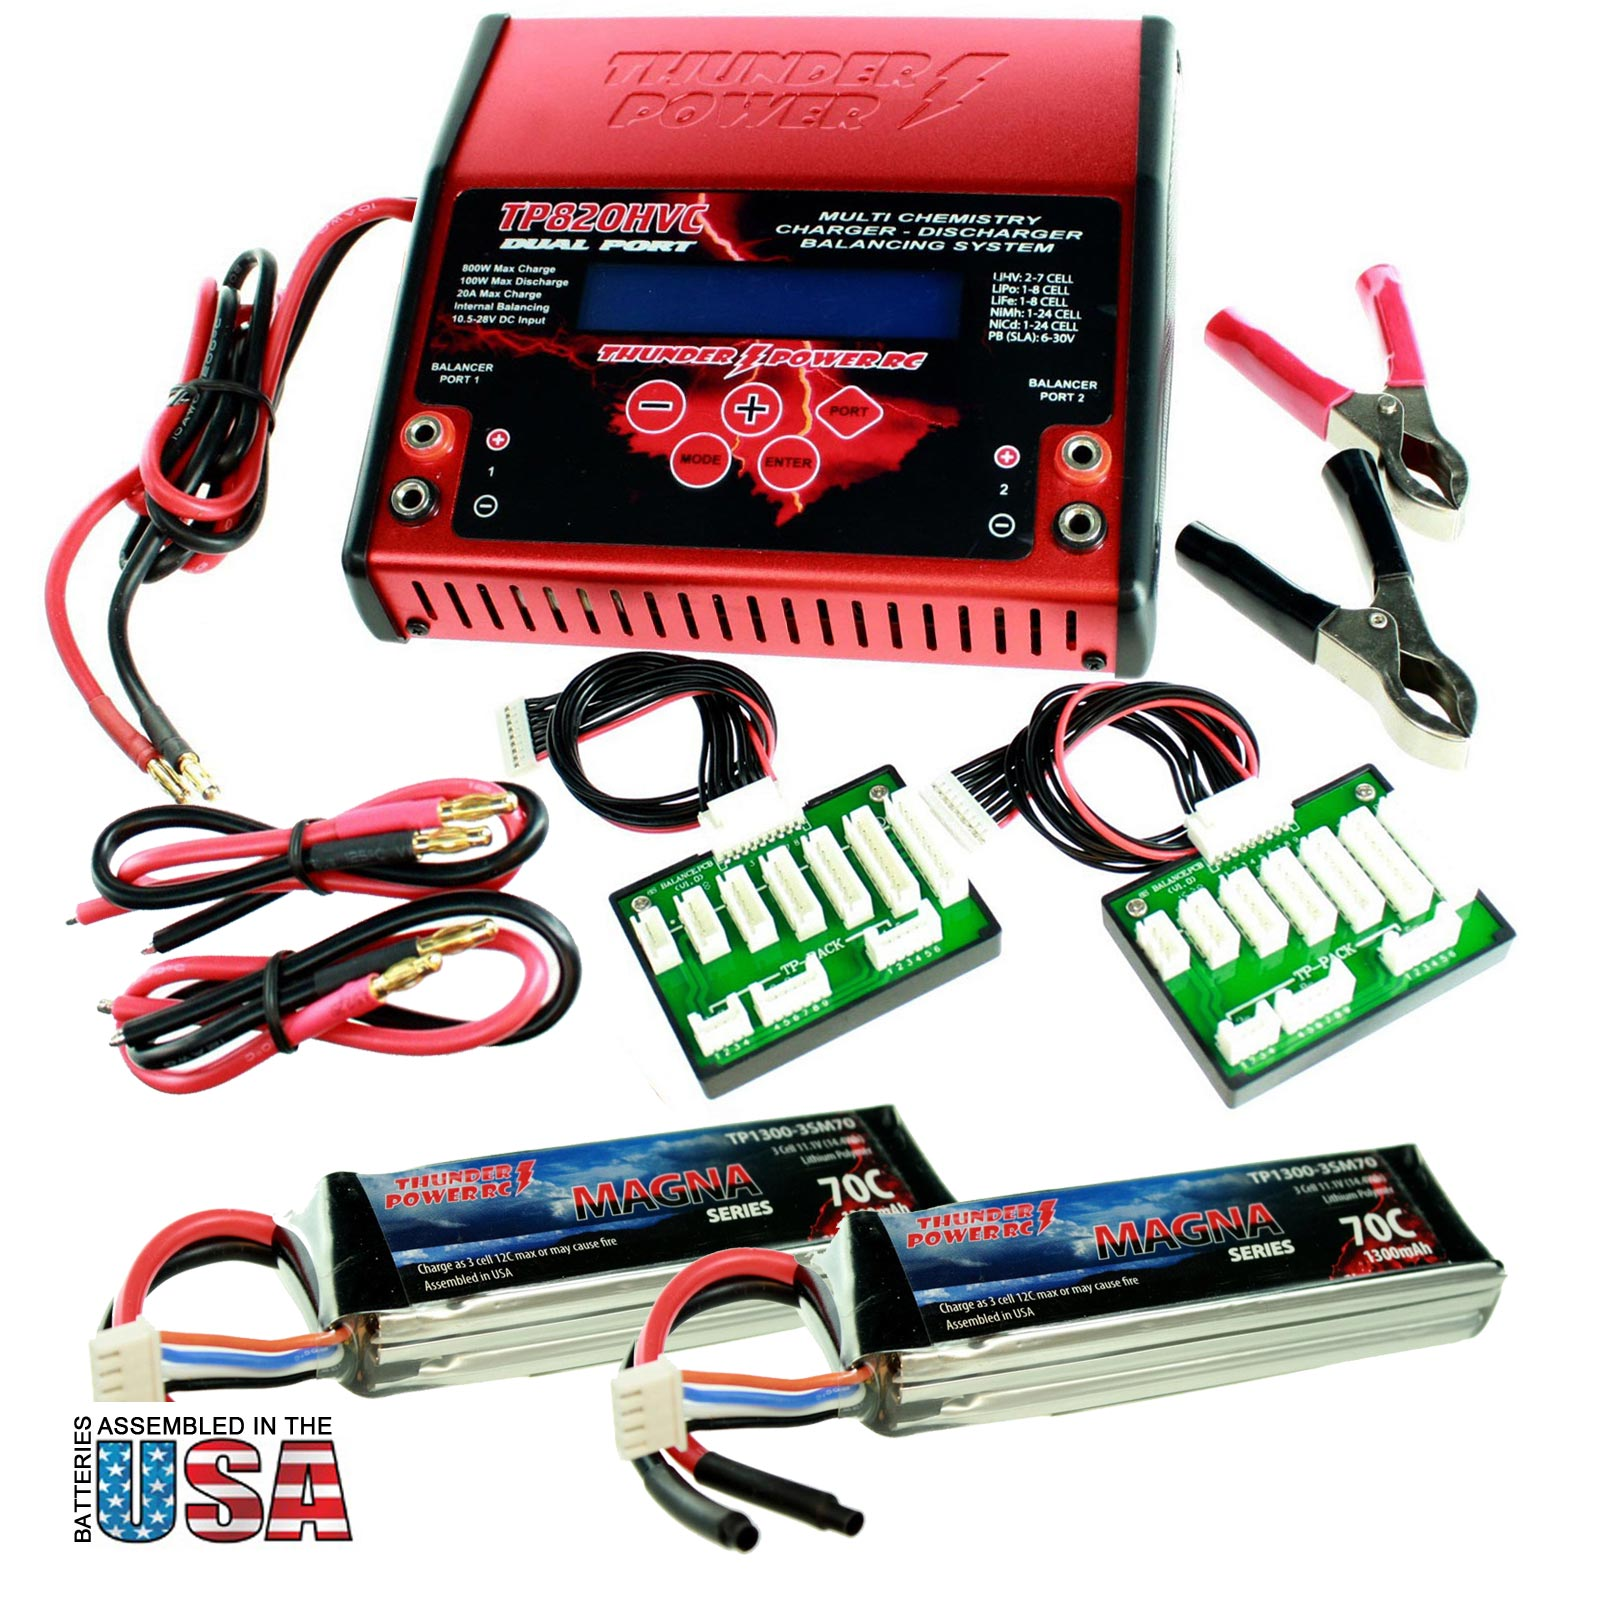 Battery Charger + 2 1300mAh Batteries For Pro RC Car/Tank